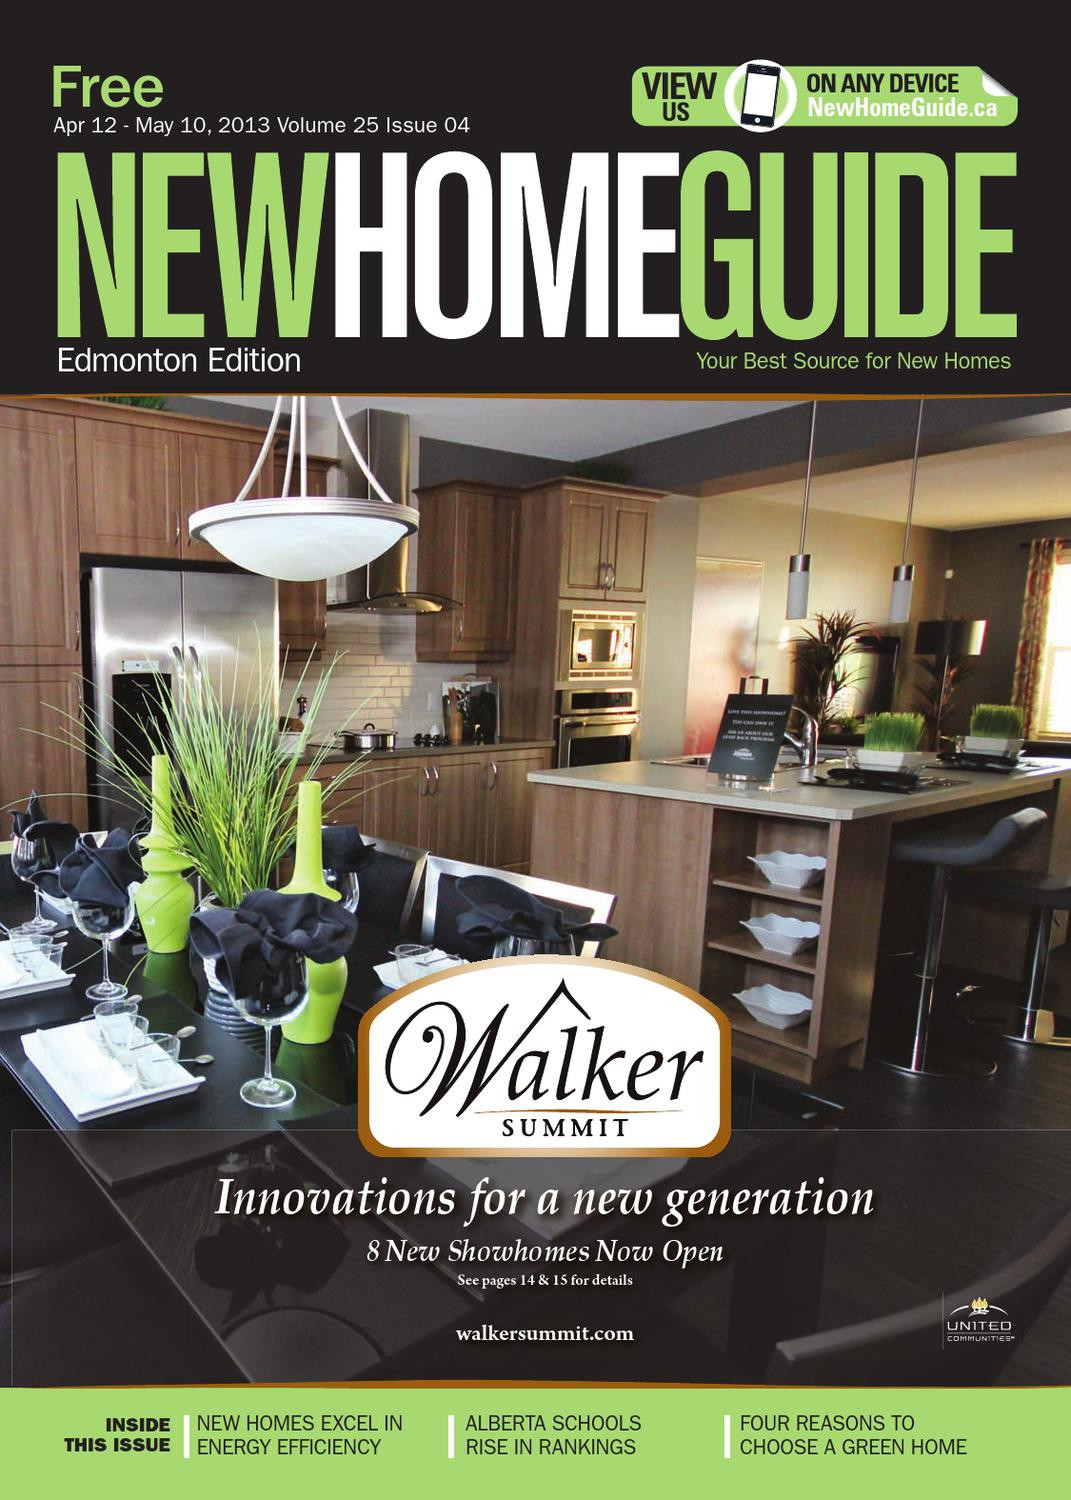 divine hardwood flooring edmonton of edmonton new home guide april 12 2013 by nexthome issuu within page 1